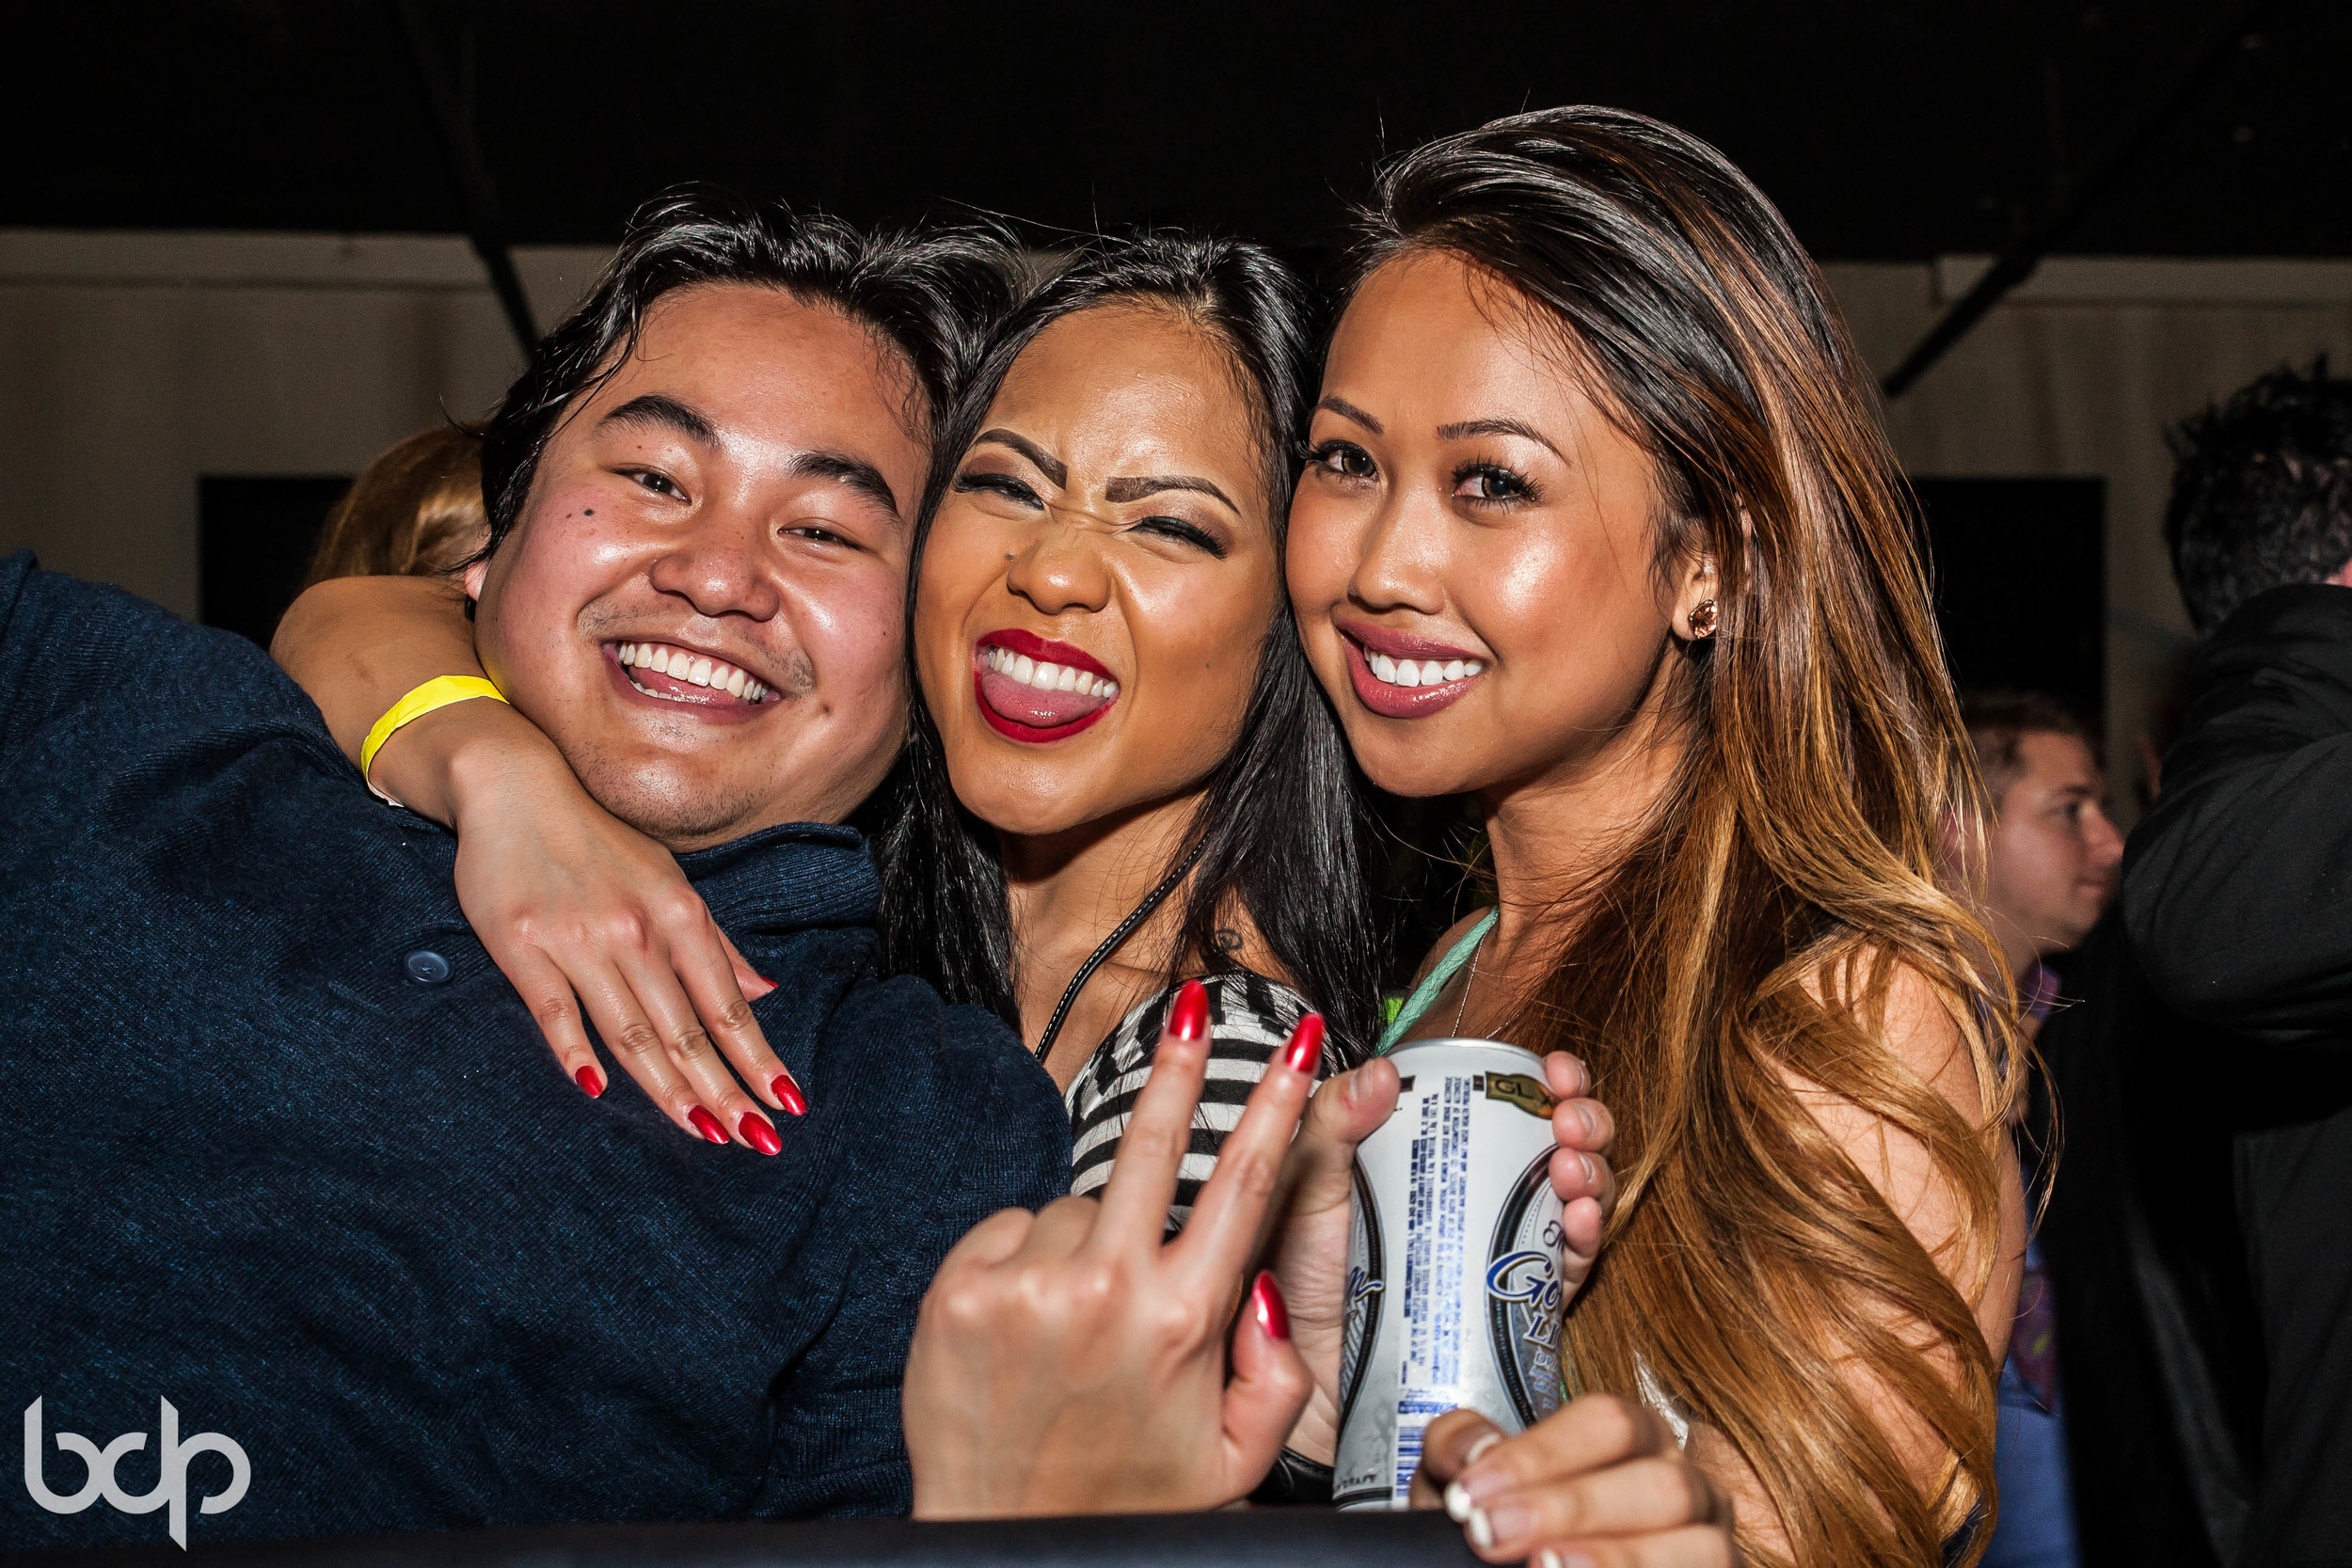 Aokify America Tour at Epic at Epic 110913 BDP-12.jpg